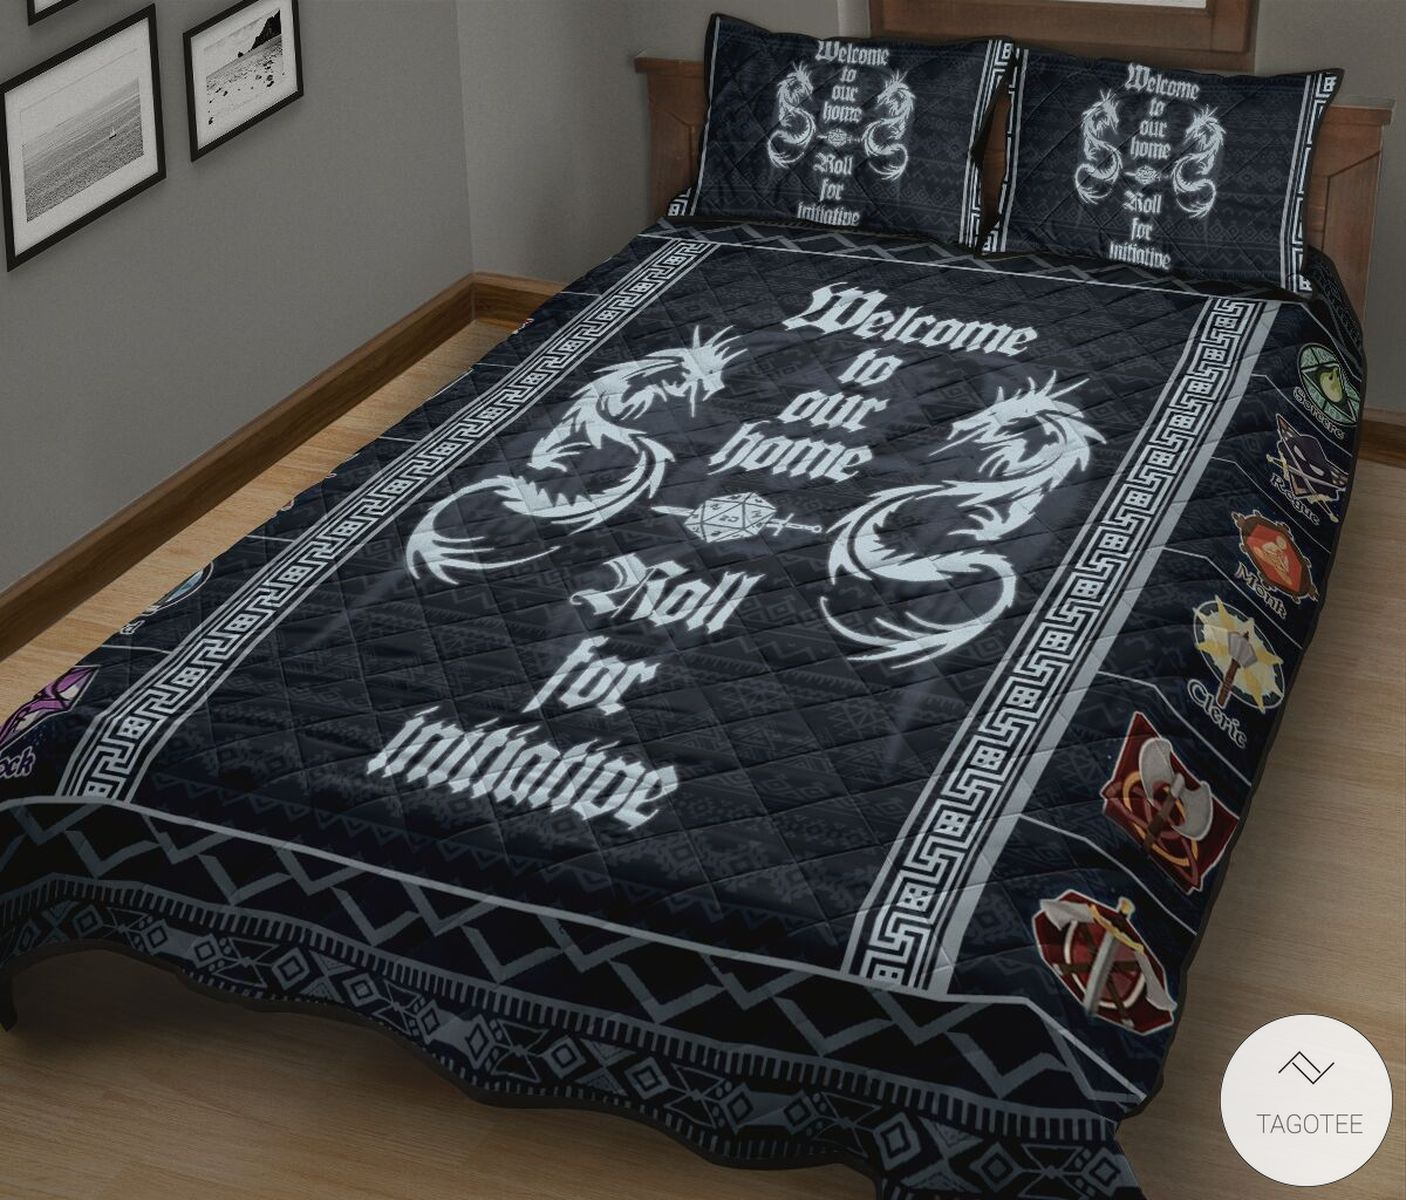 Dungeons & Dragons Welcome To Our Home Roll For Initiative Quilt Bedding Setz